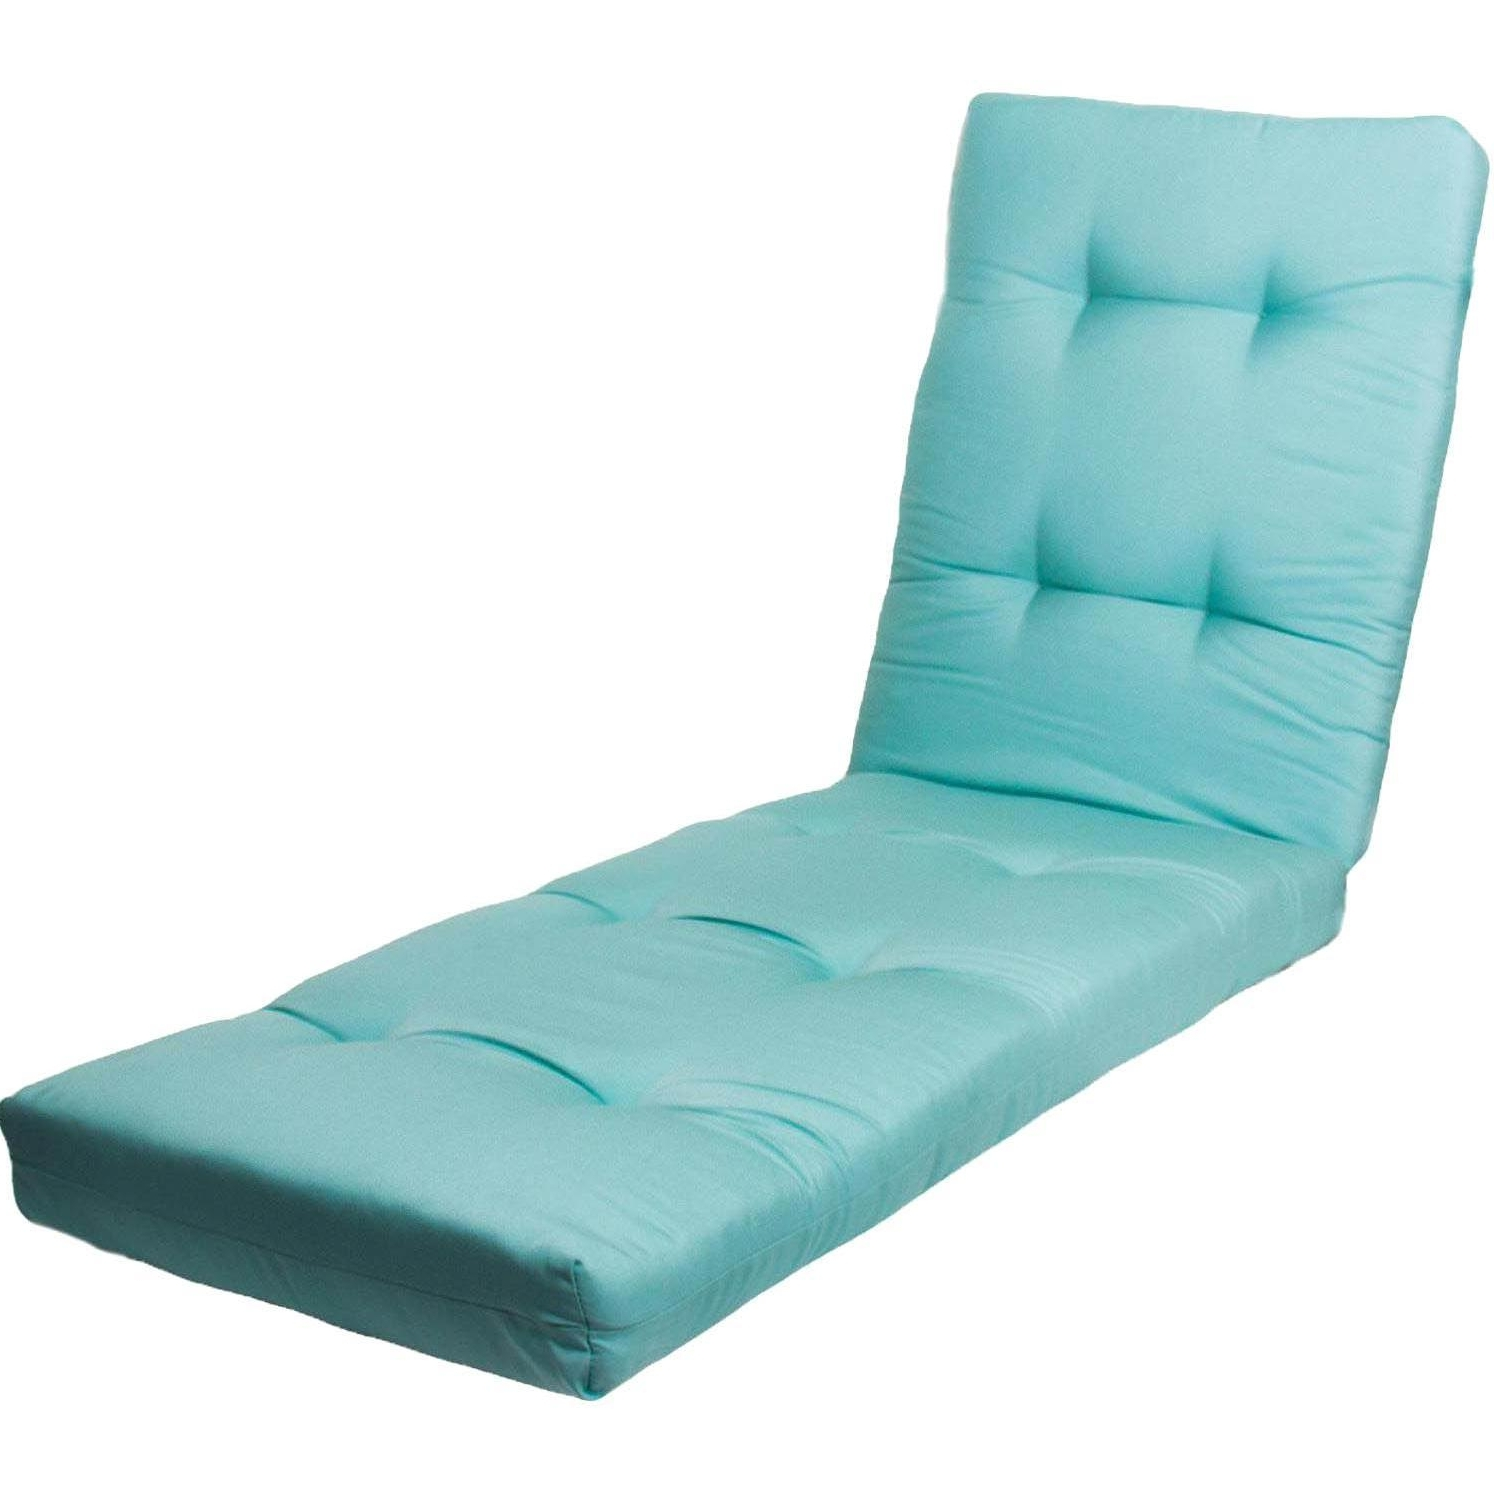 Newest Outdoor Chaise Lounge Cushions In Sunbrella Canvas Glacier Extra Long Outdoor Replacement Chaise (View 8 of 15)